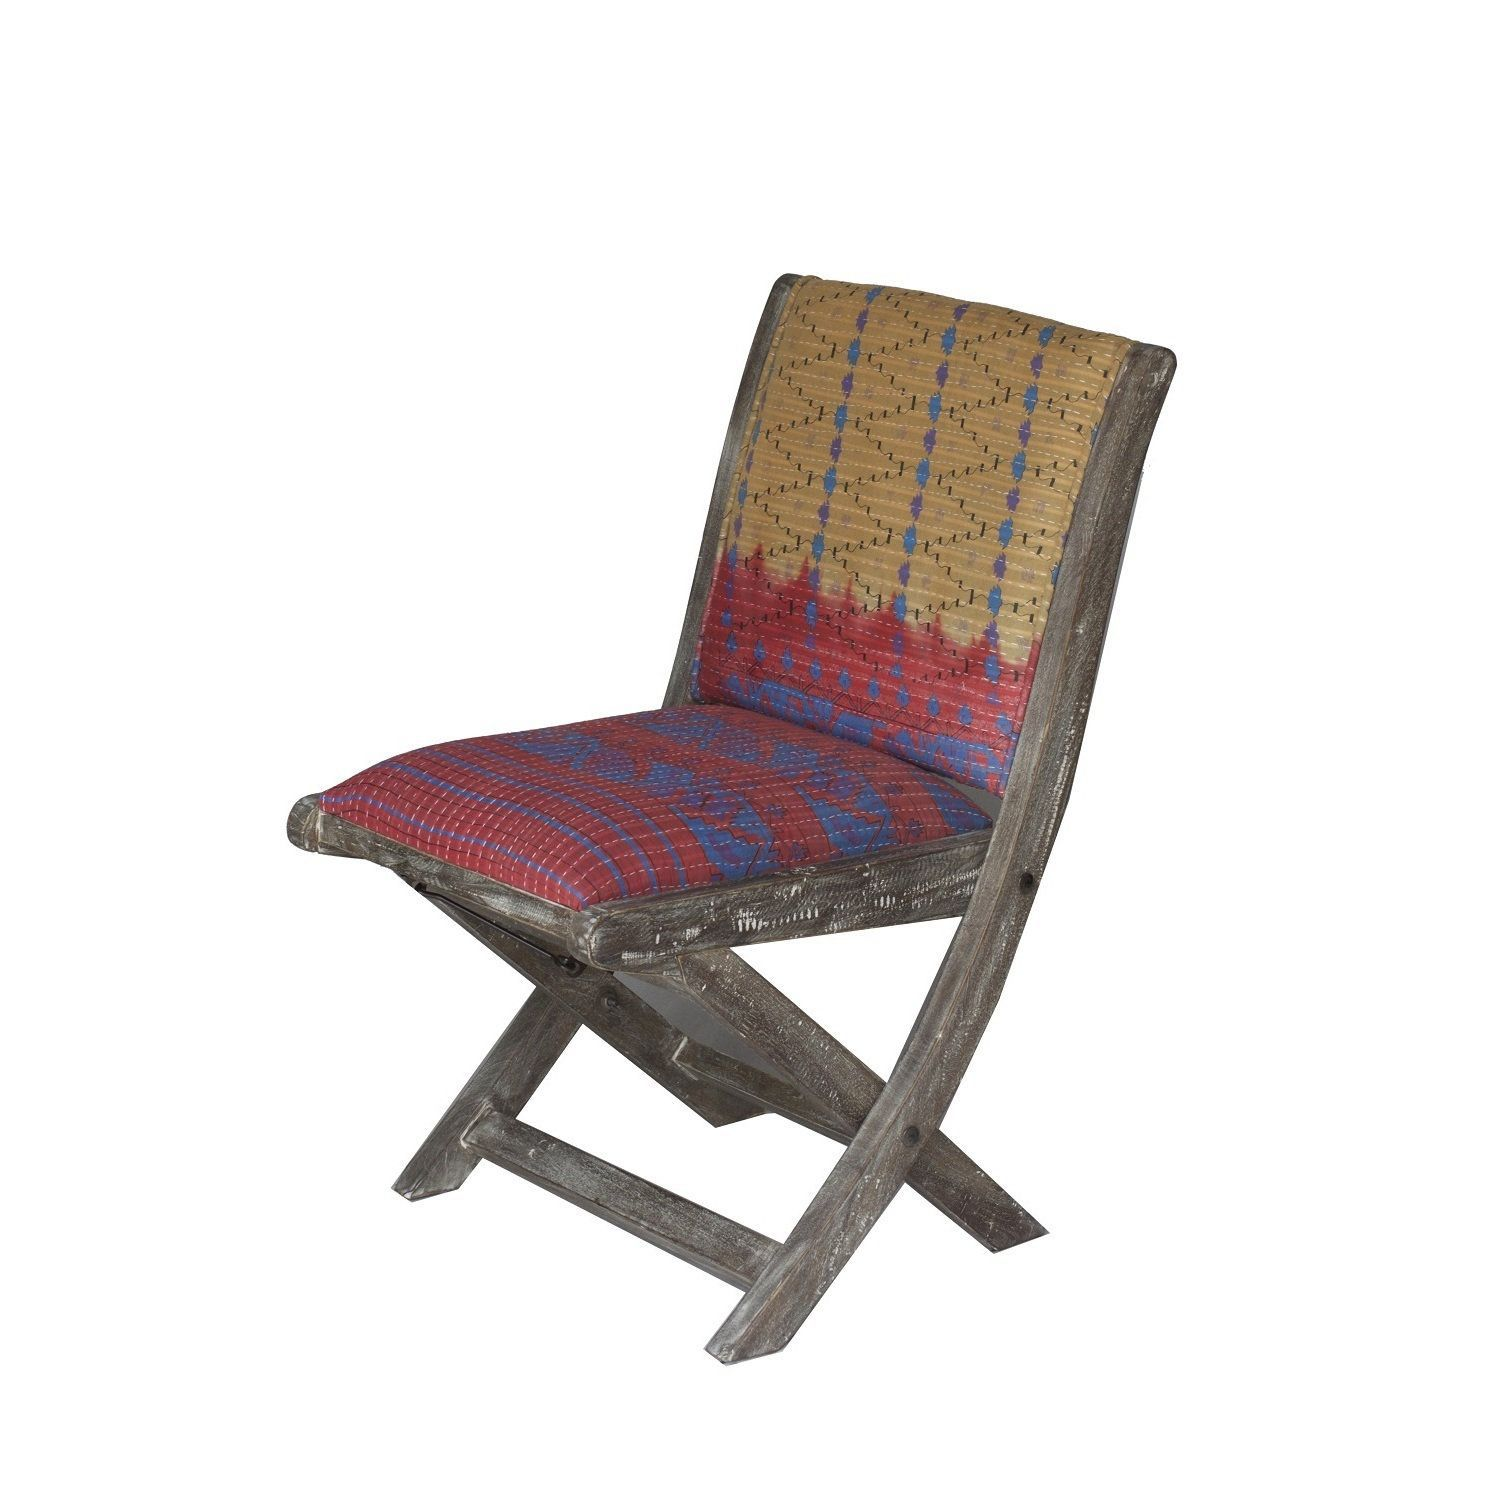 Handmade red blue yellow floral pattern folding accent chair india single folding kantha chair g black cotton